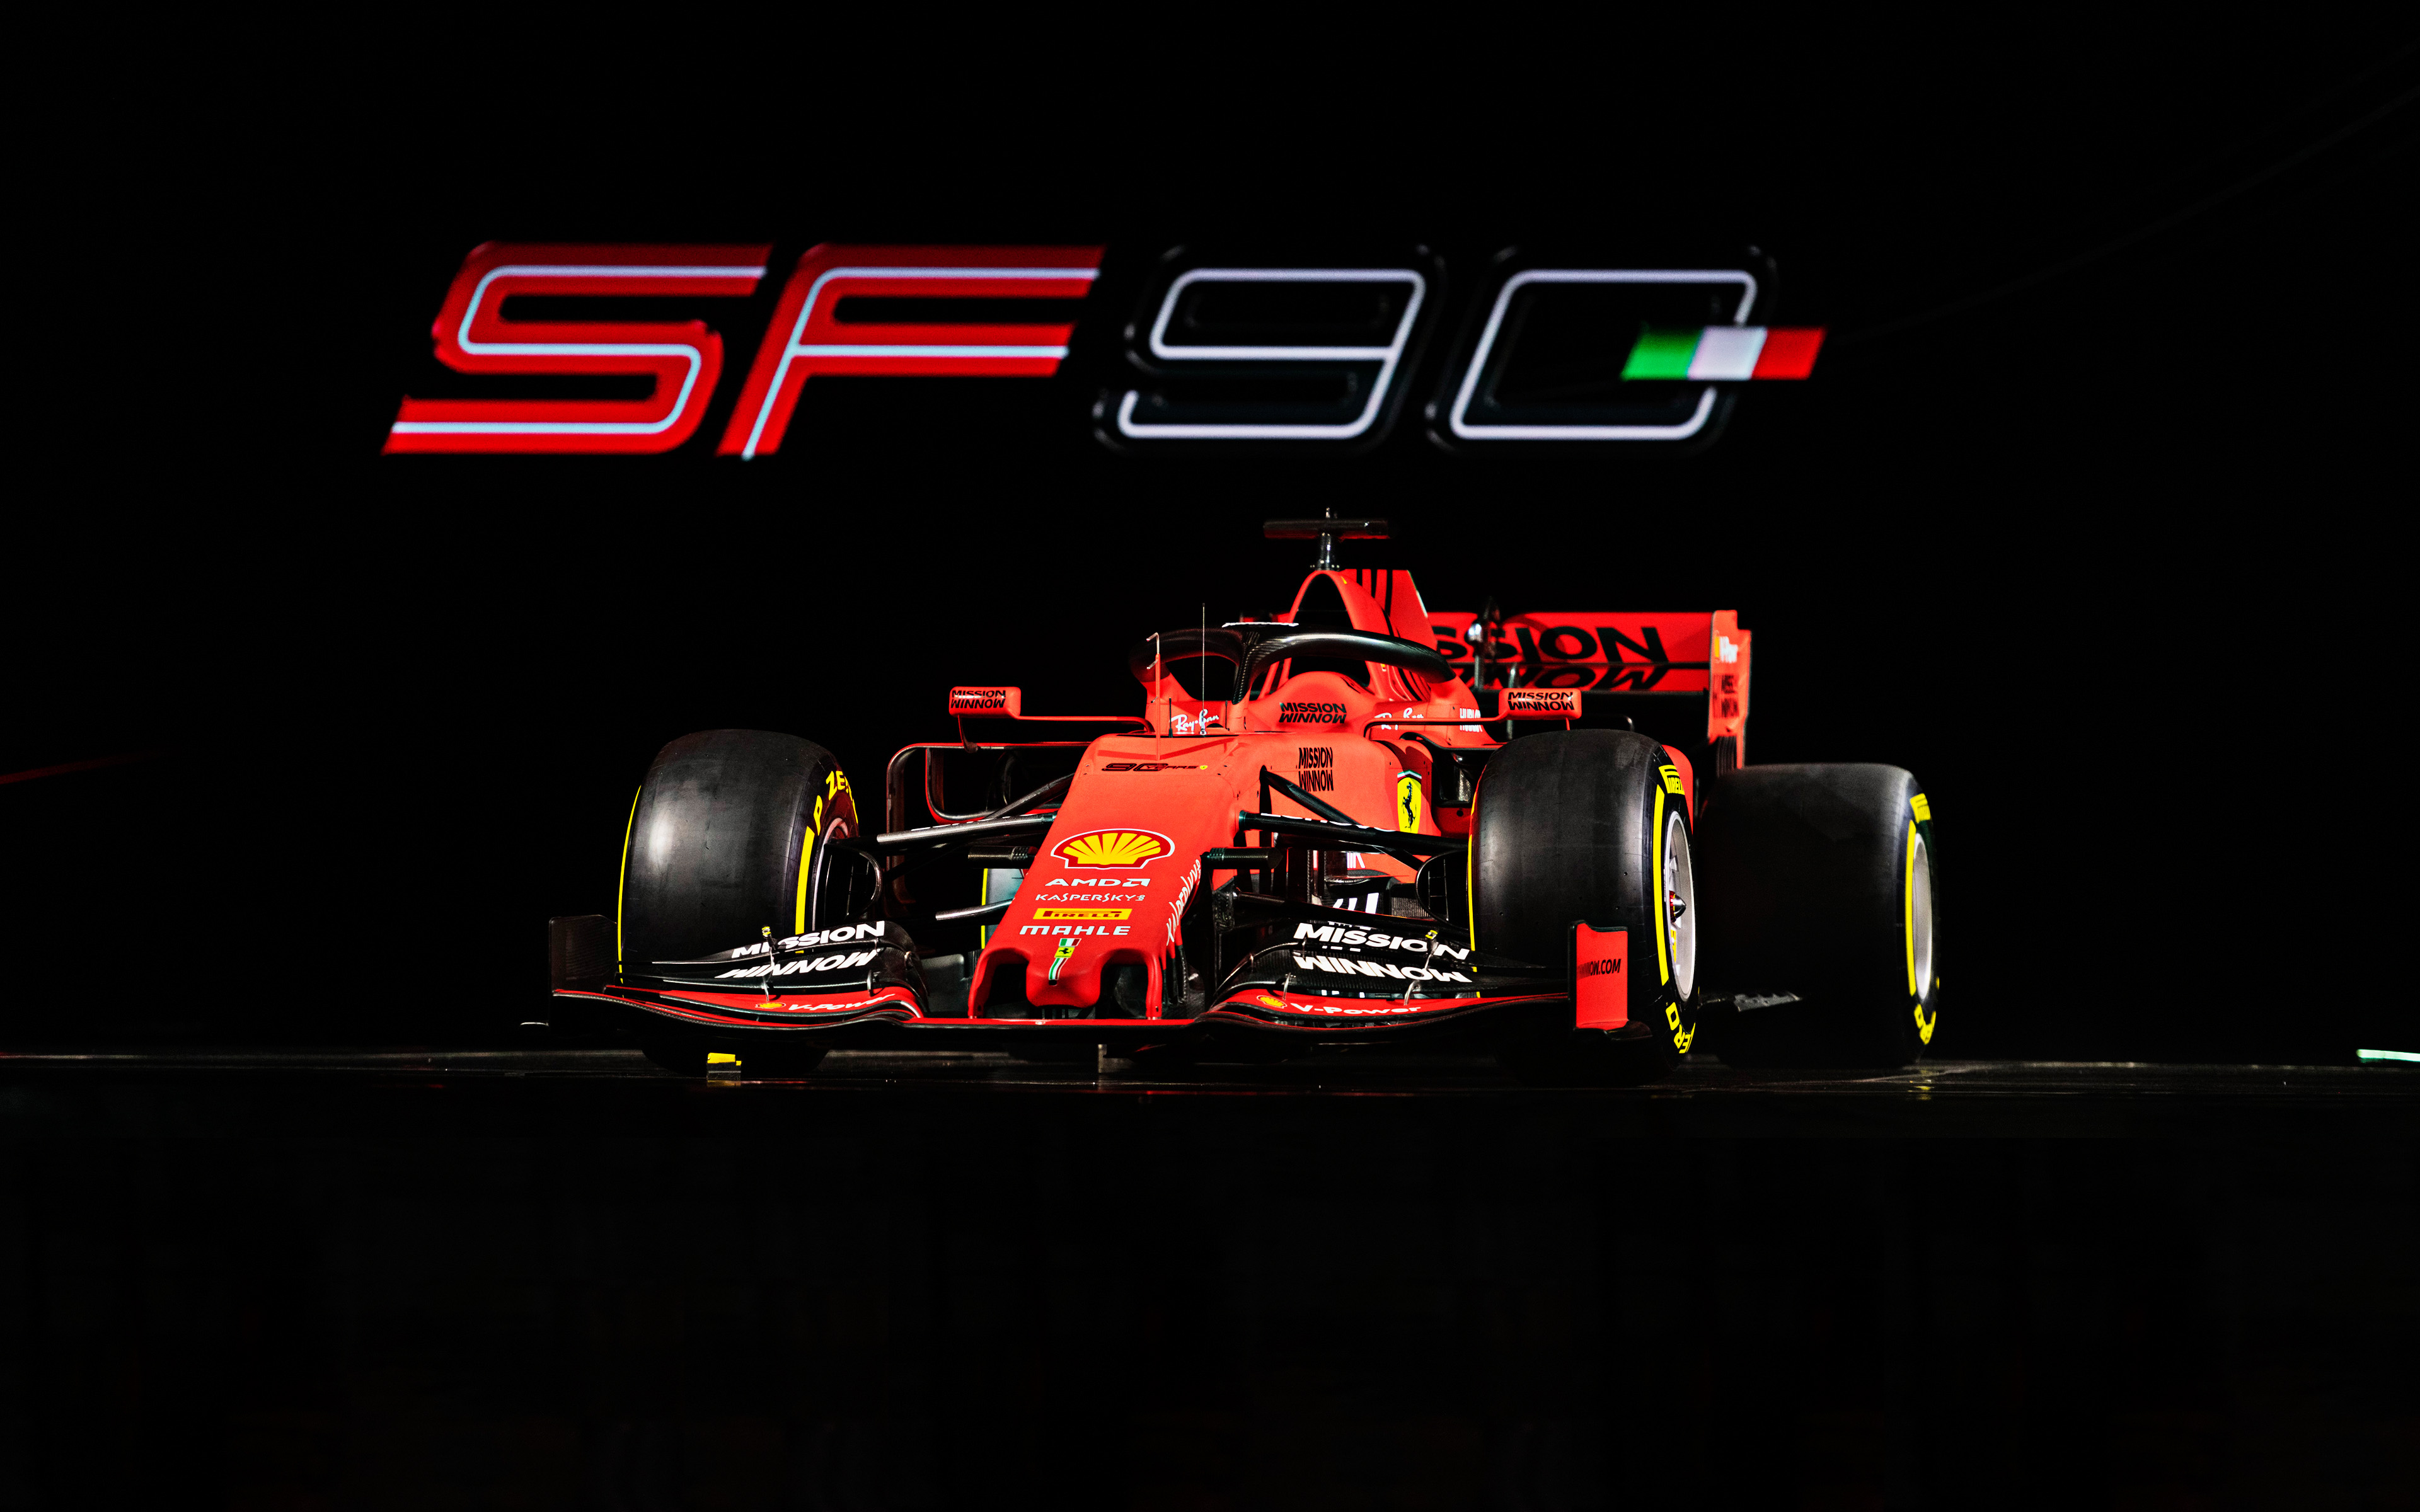 Desktop Wallpaper Ferrari Sf71h Formula One F1 Sports: Download Wallpapers Ferrari SF90, 4k, 2019 F1 Cars